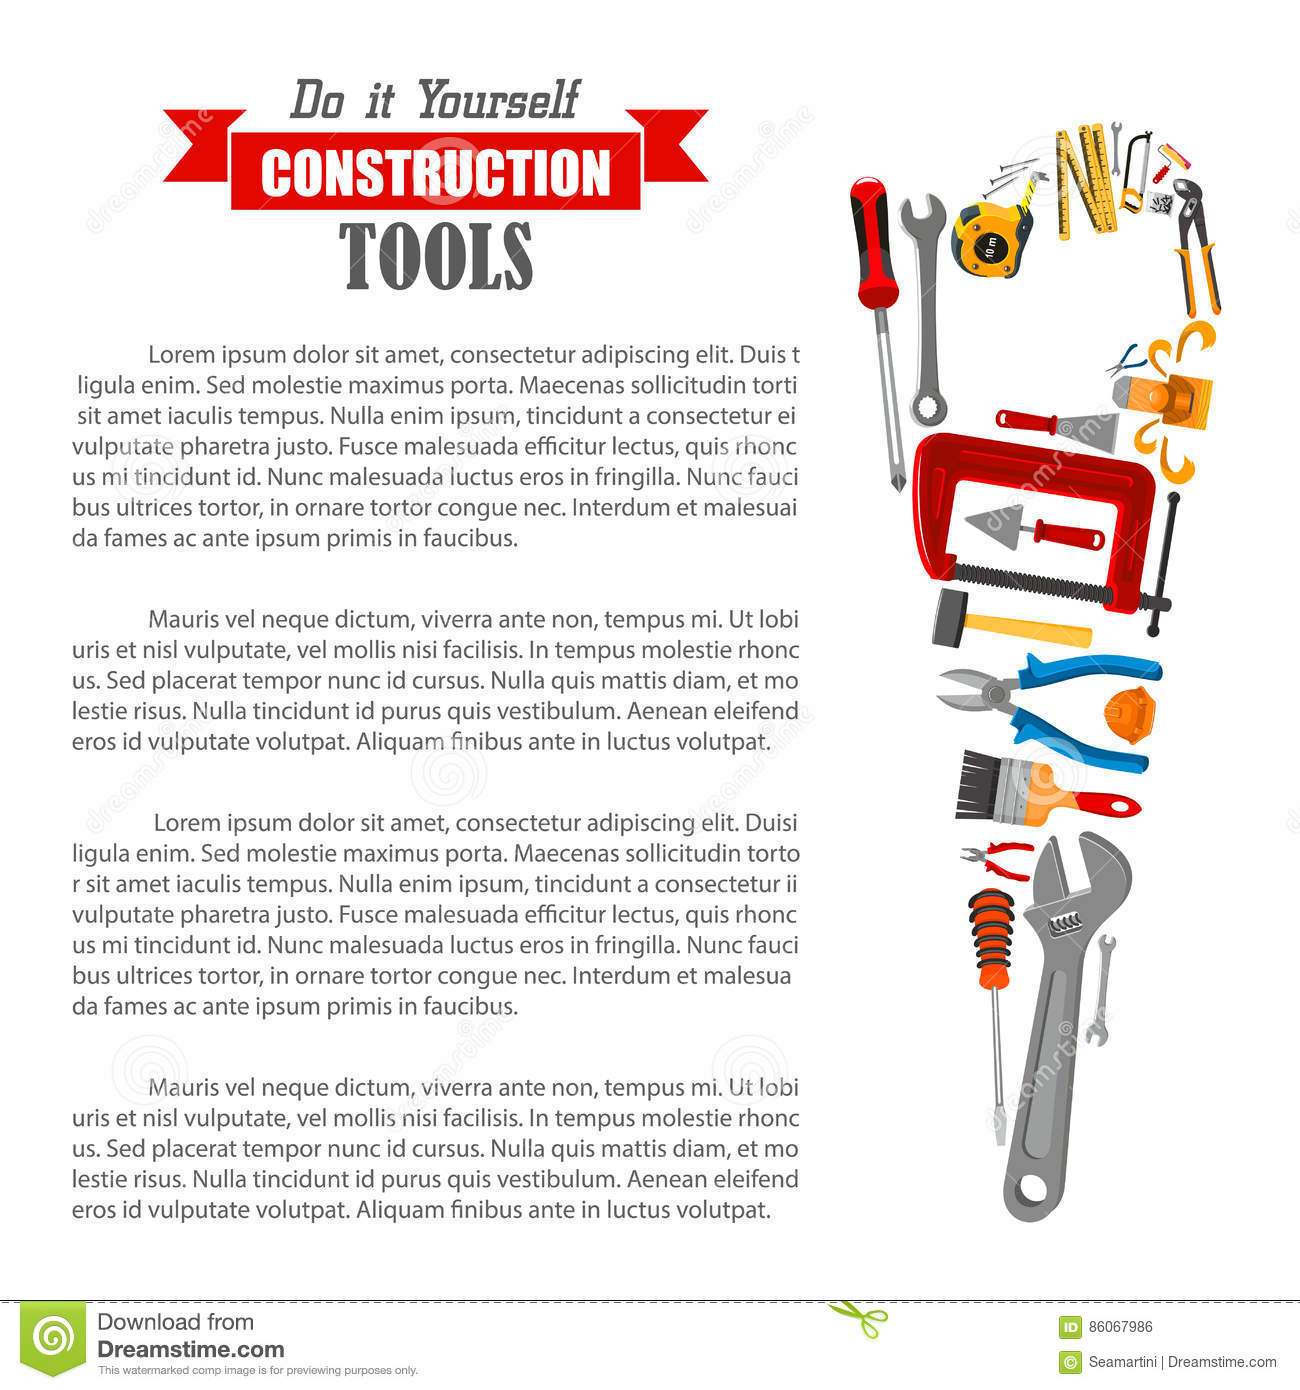 Hand saw with work tool poster for diy design stock vector download hand saw with work tool poster for diy design stock vector illustration of brush solutioingenieria Gallery